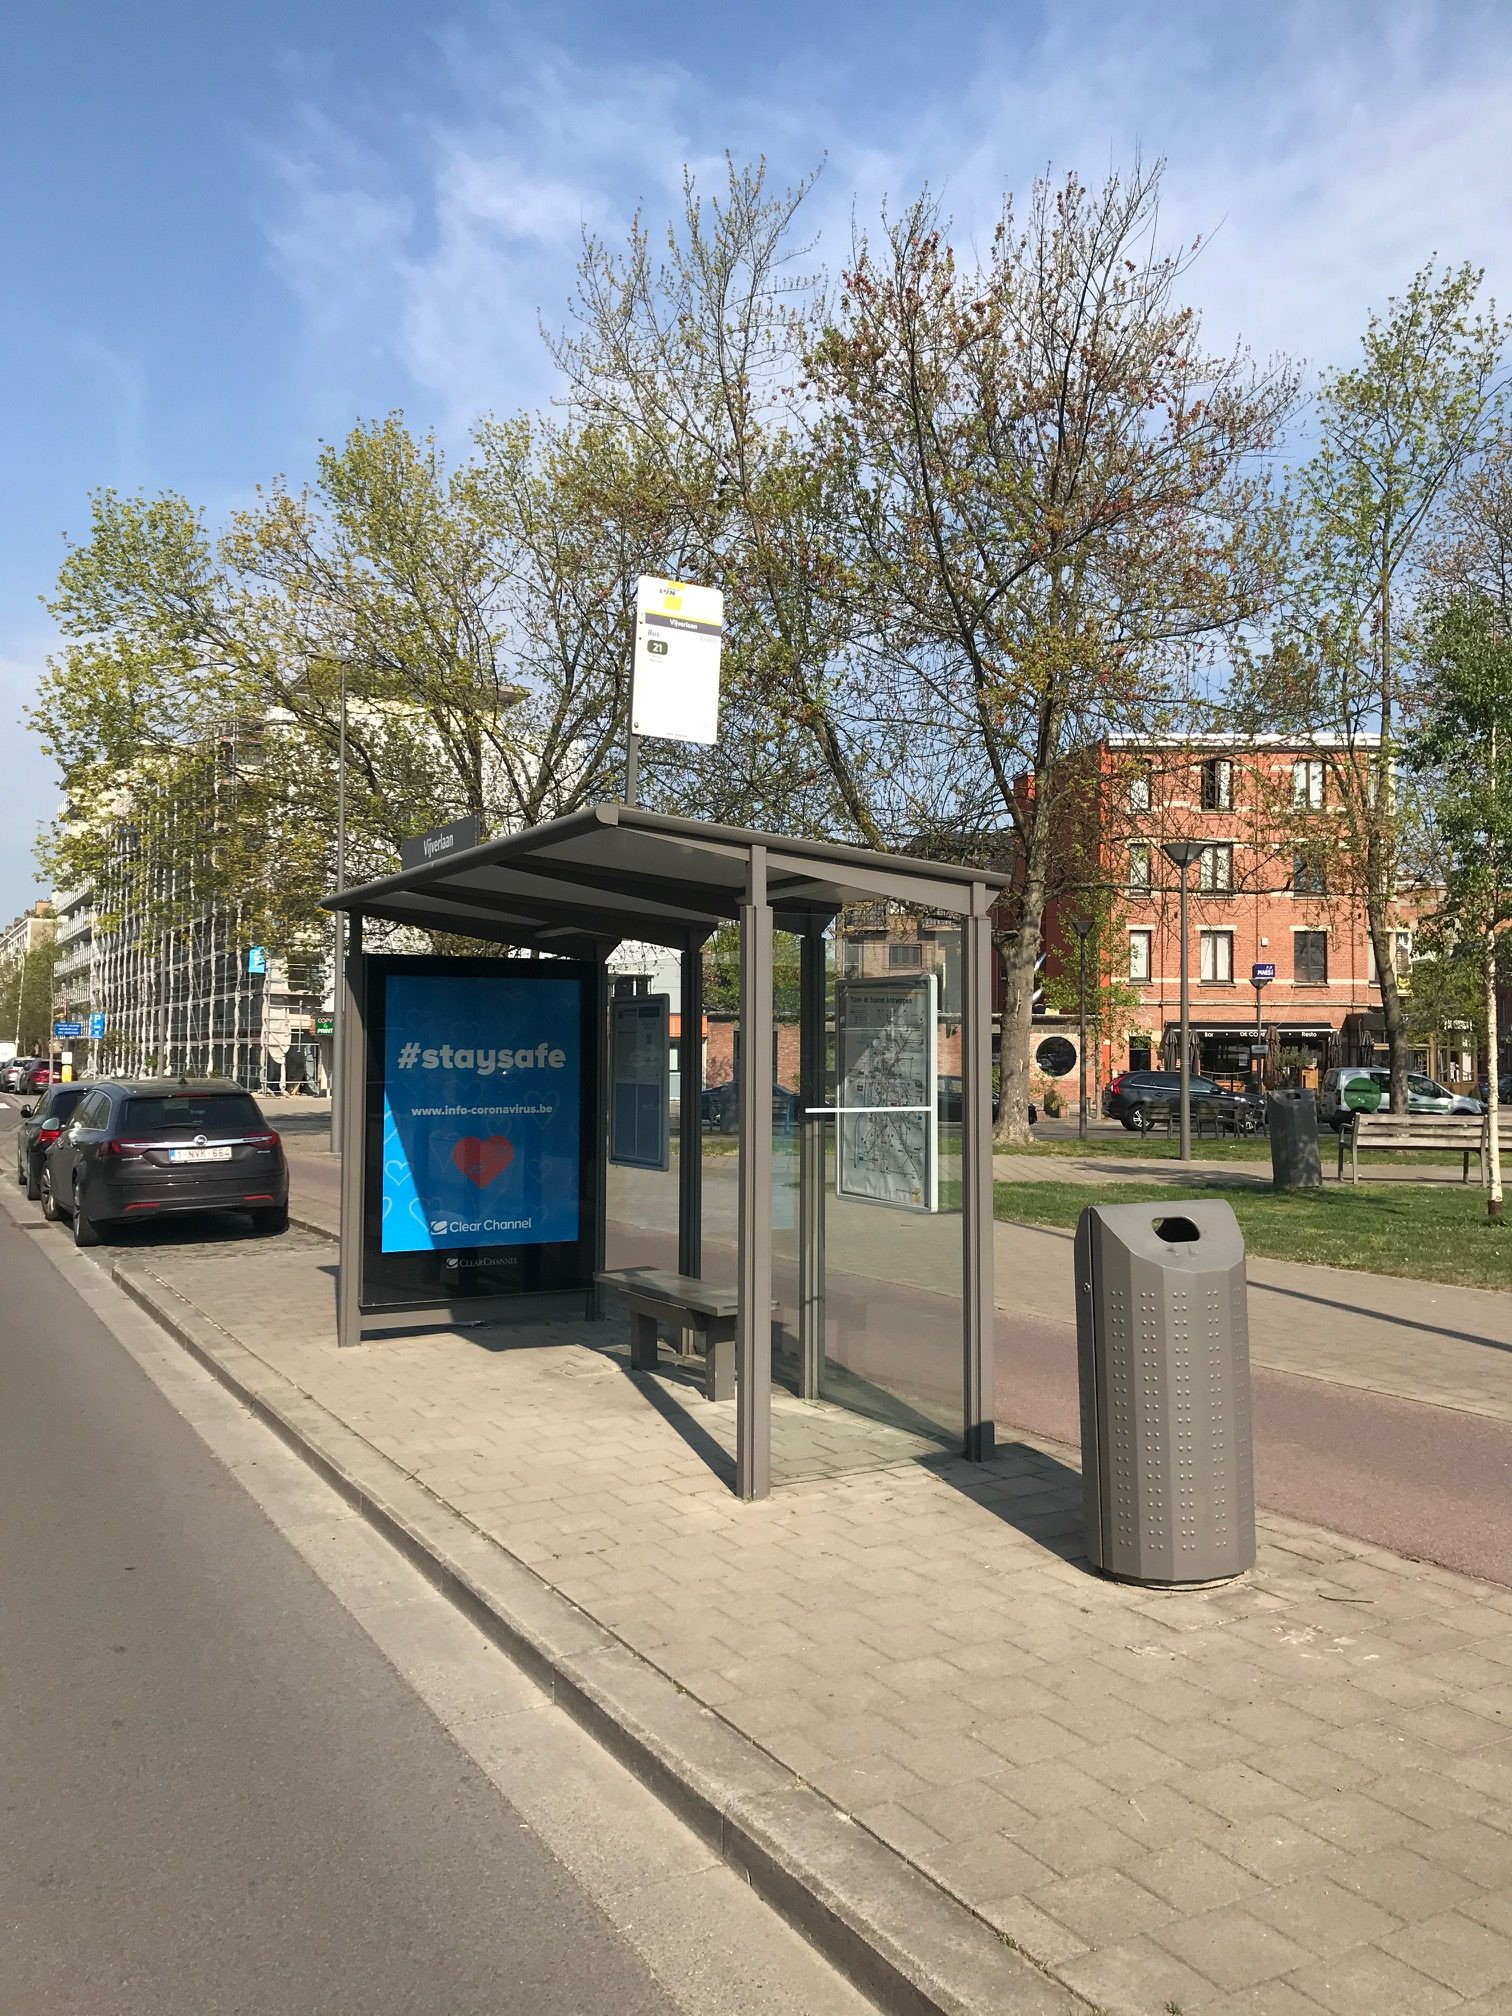 Bart Vanderkinderen - Clear Channel, bushokje met affiche '#Stay Safe', FelixArchief, inv. nr 2936#1.